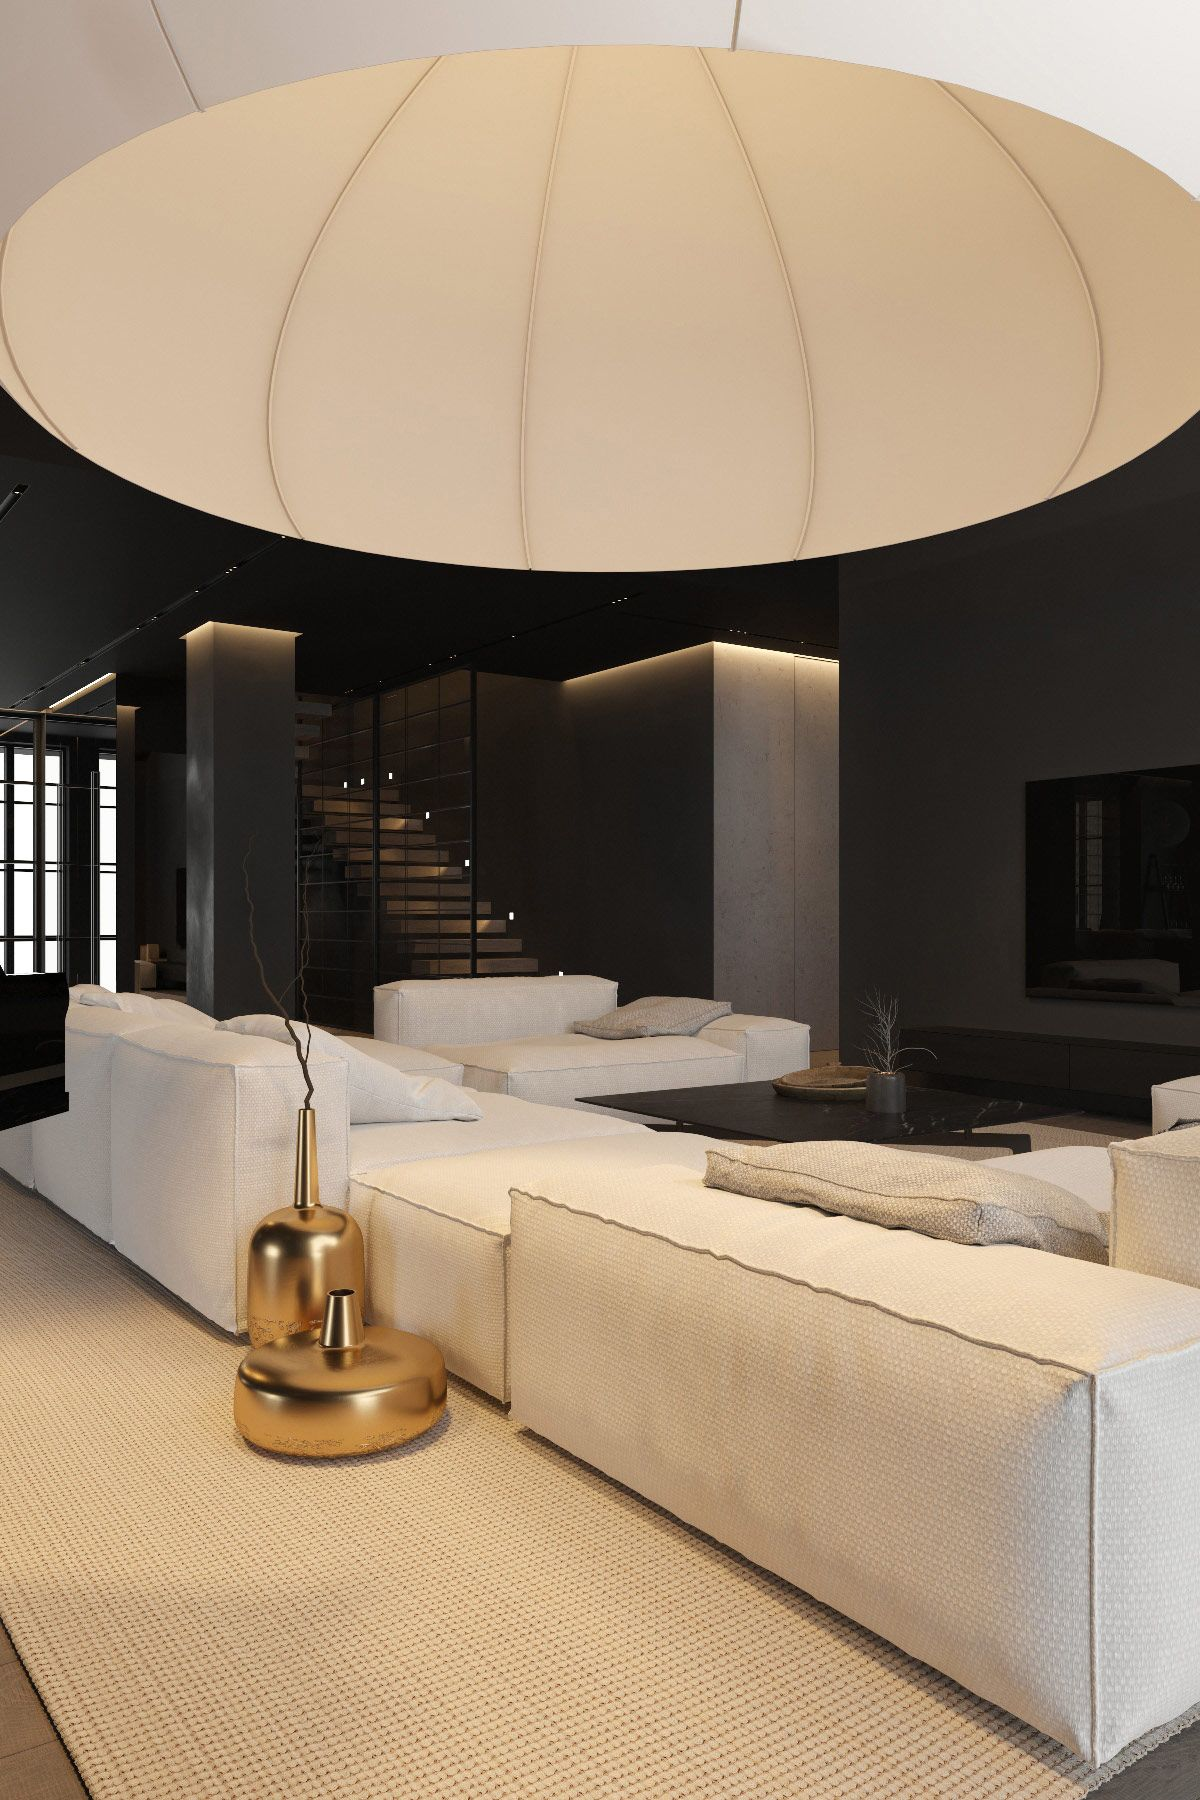 Decorating With Light: 3 Dark Interiors With Inspirational Home Lighting